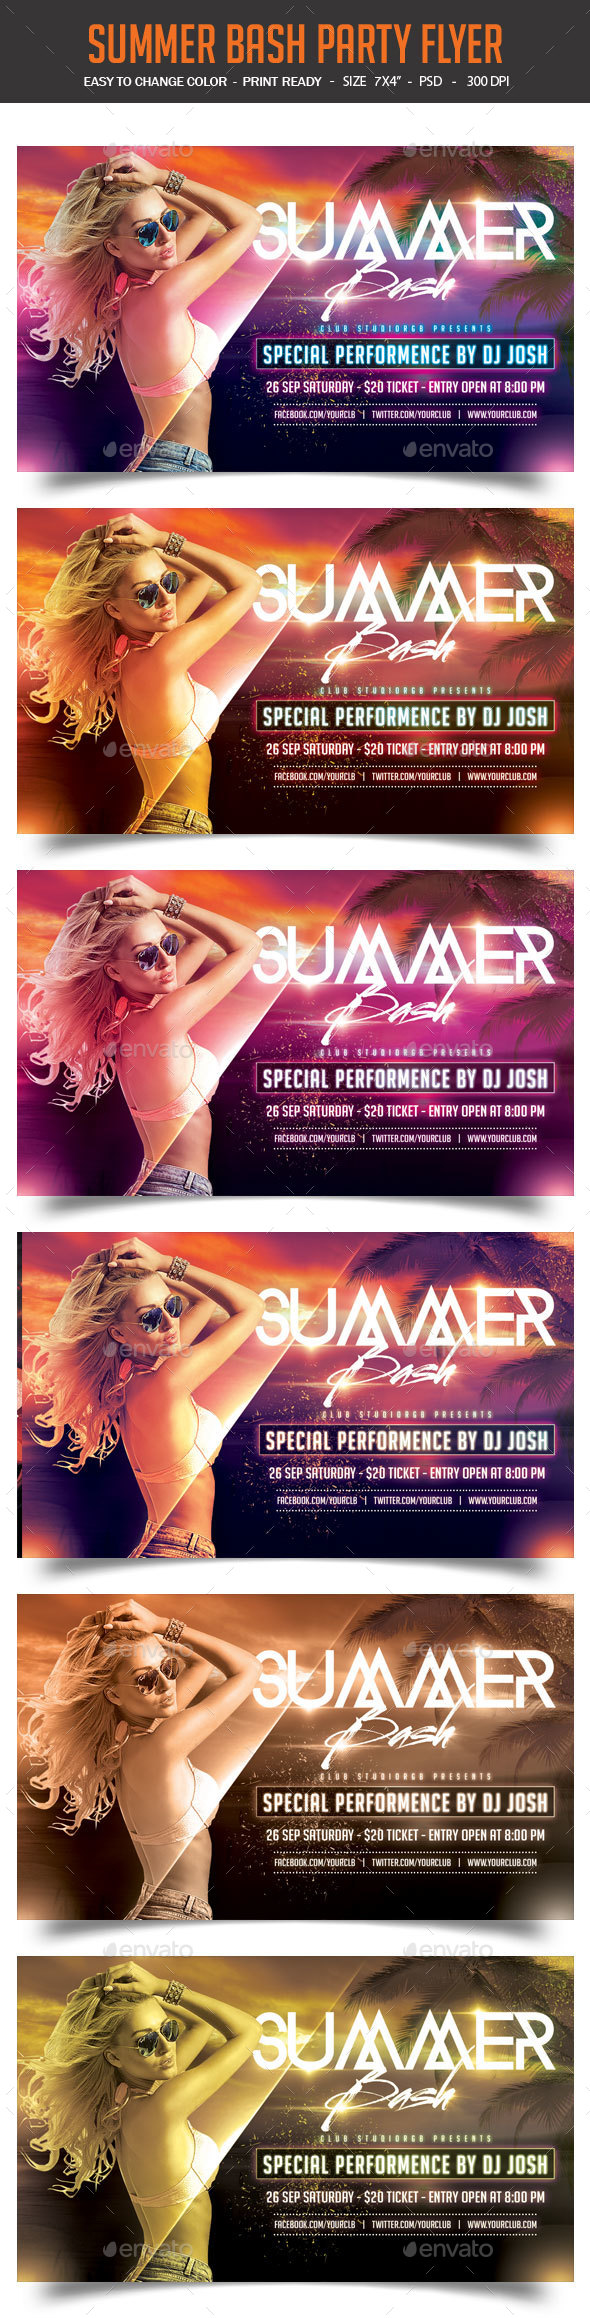 Summer Bash Party Flyer - Clubs & Parties Events